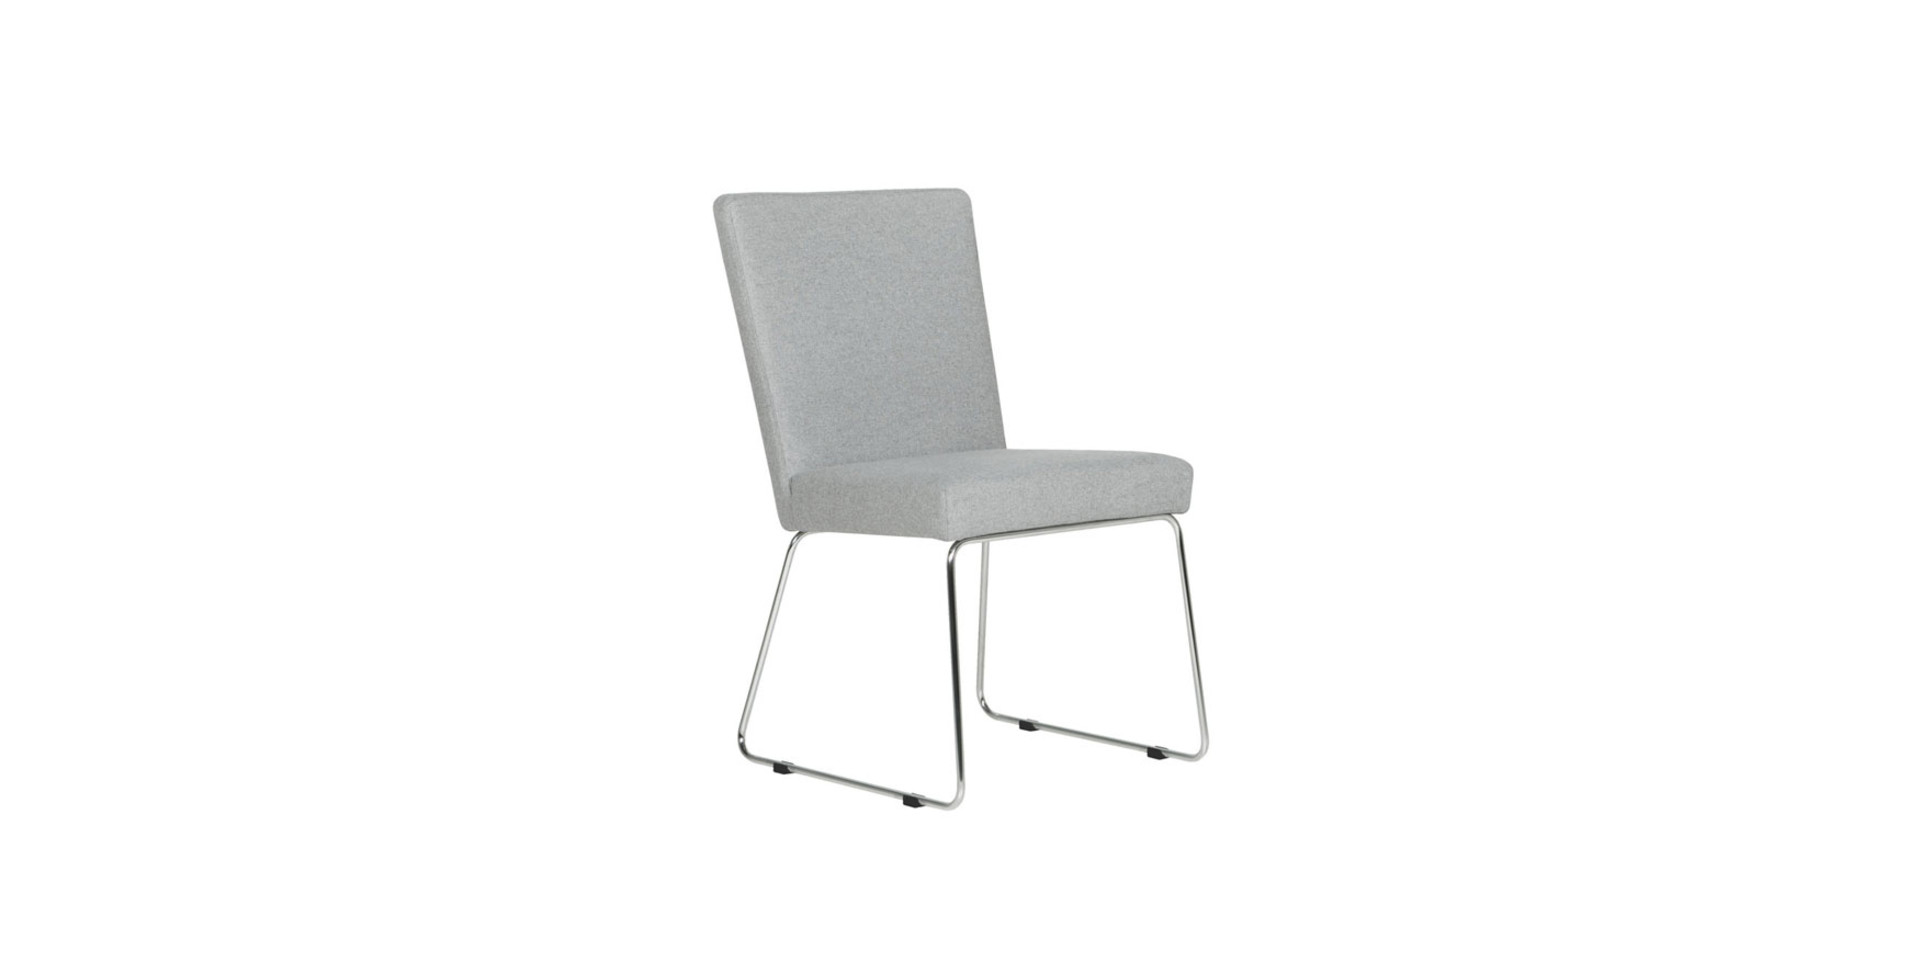 sits-clark-chaise-chair_panno1000_light_grey_2